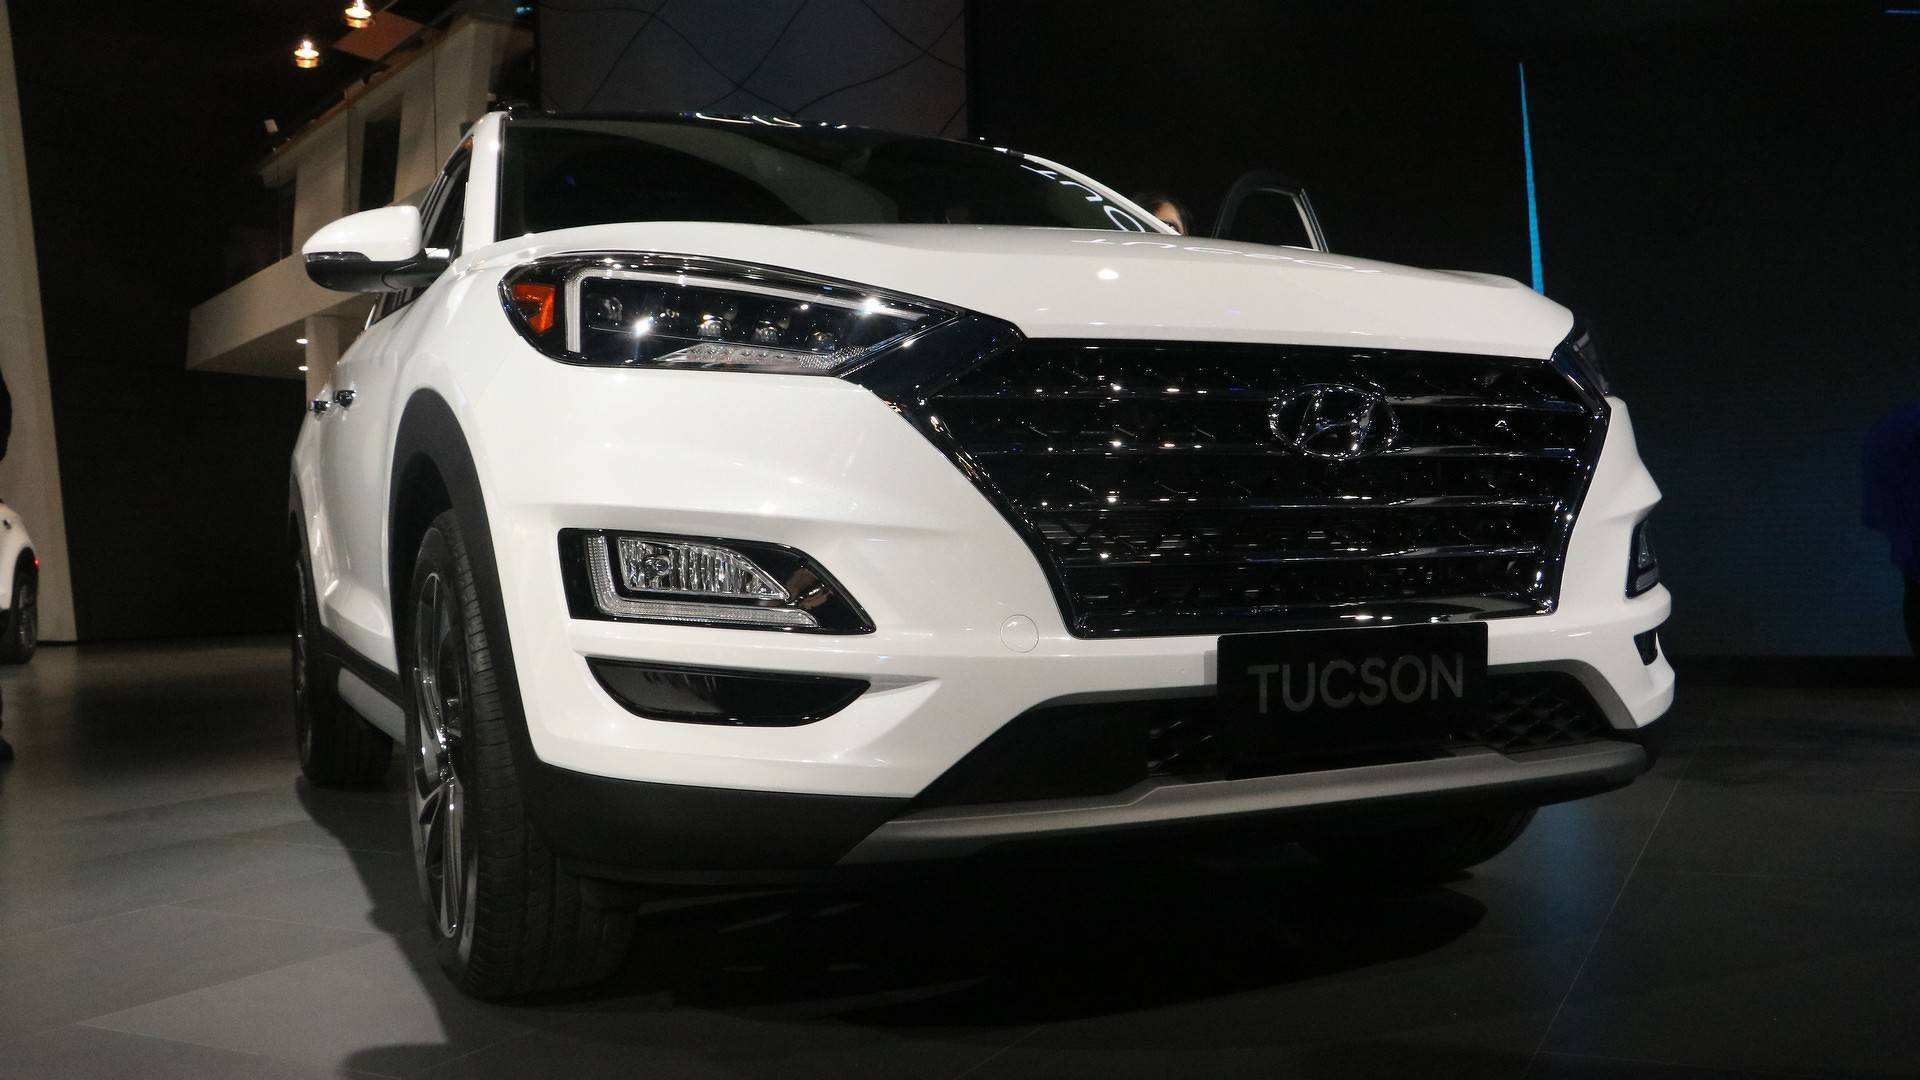 84 Concept of Hyundai Tucson 2019 Facelift Performance with Hyundai Tucson 2019 Facelift